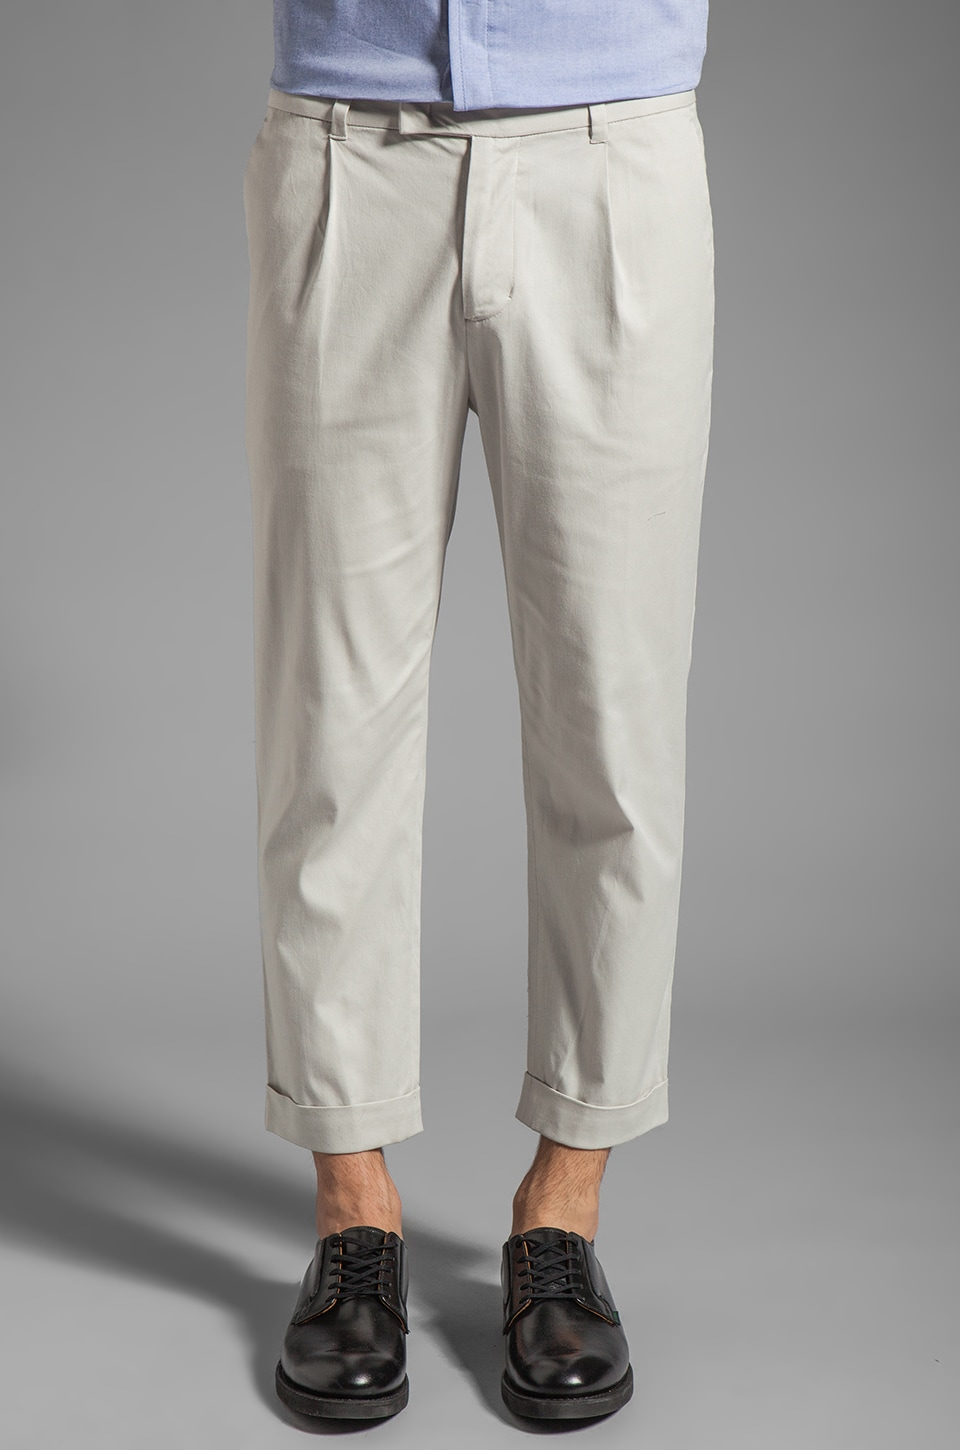 Kai-aakmann Pleated Pant in Light Grey